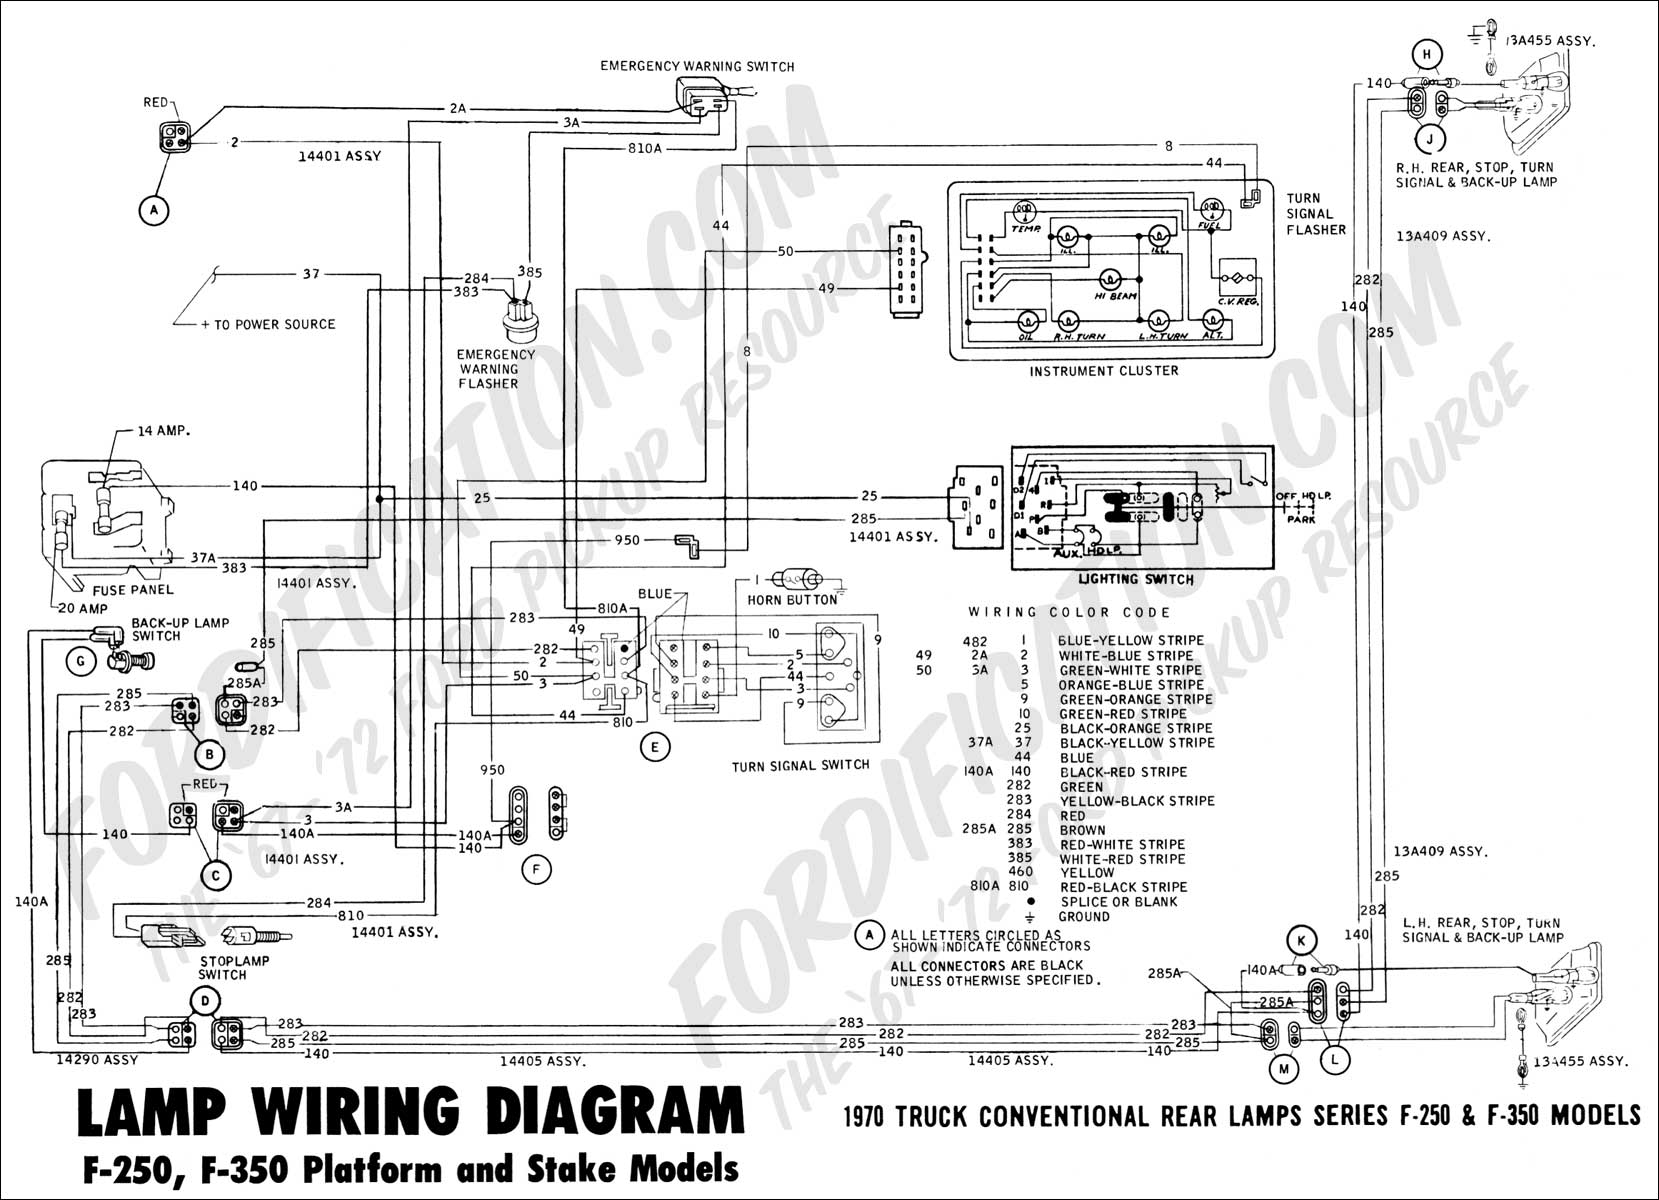 hight resolution of 2002 ford truck wiring diagram wiring diagram show2002 f150 wiring diagram wiring diagram img 2002 ford